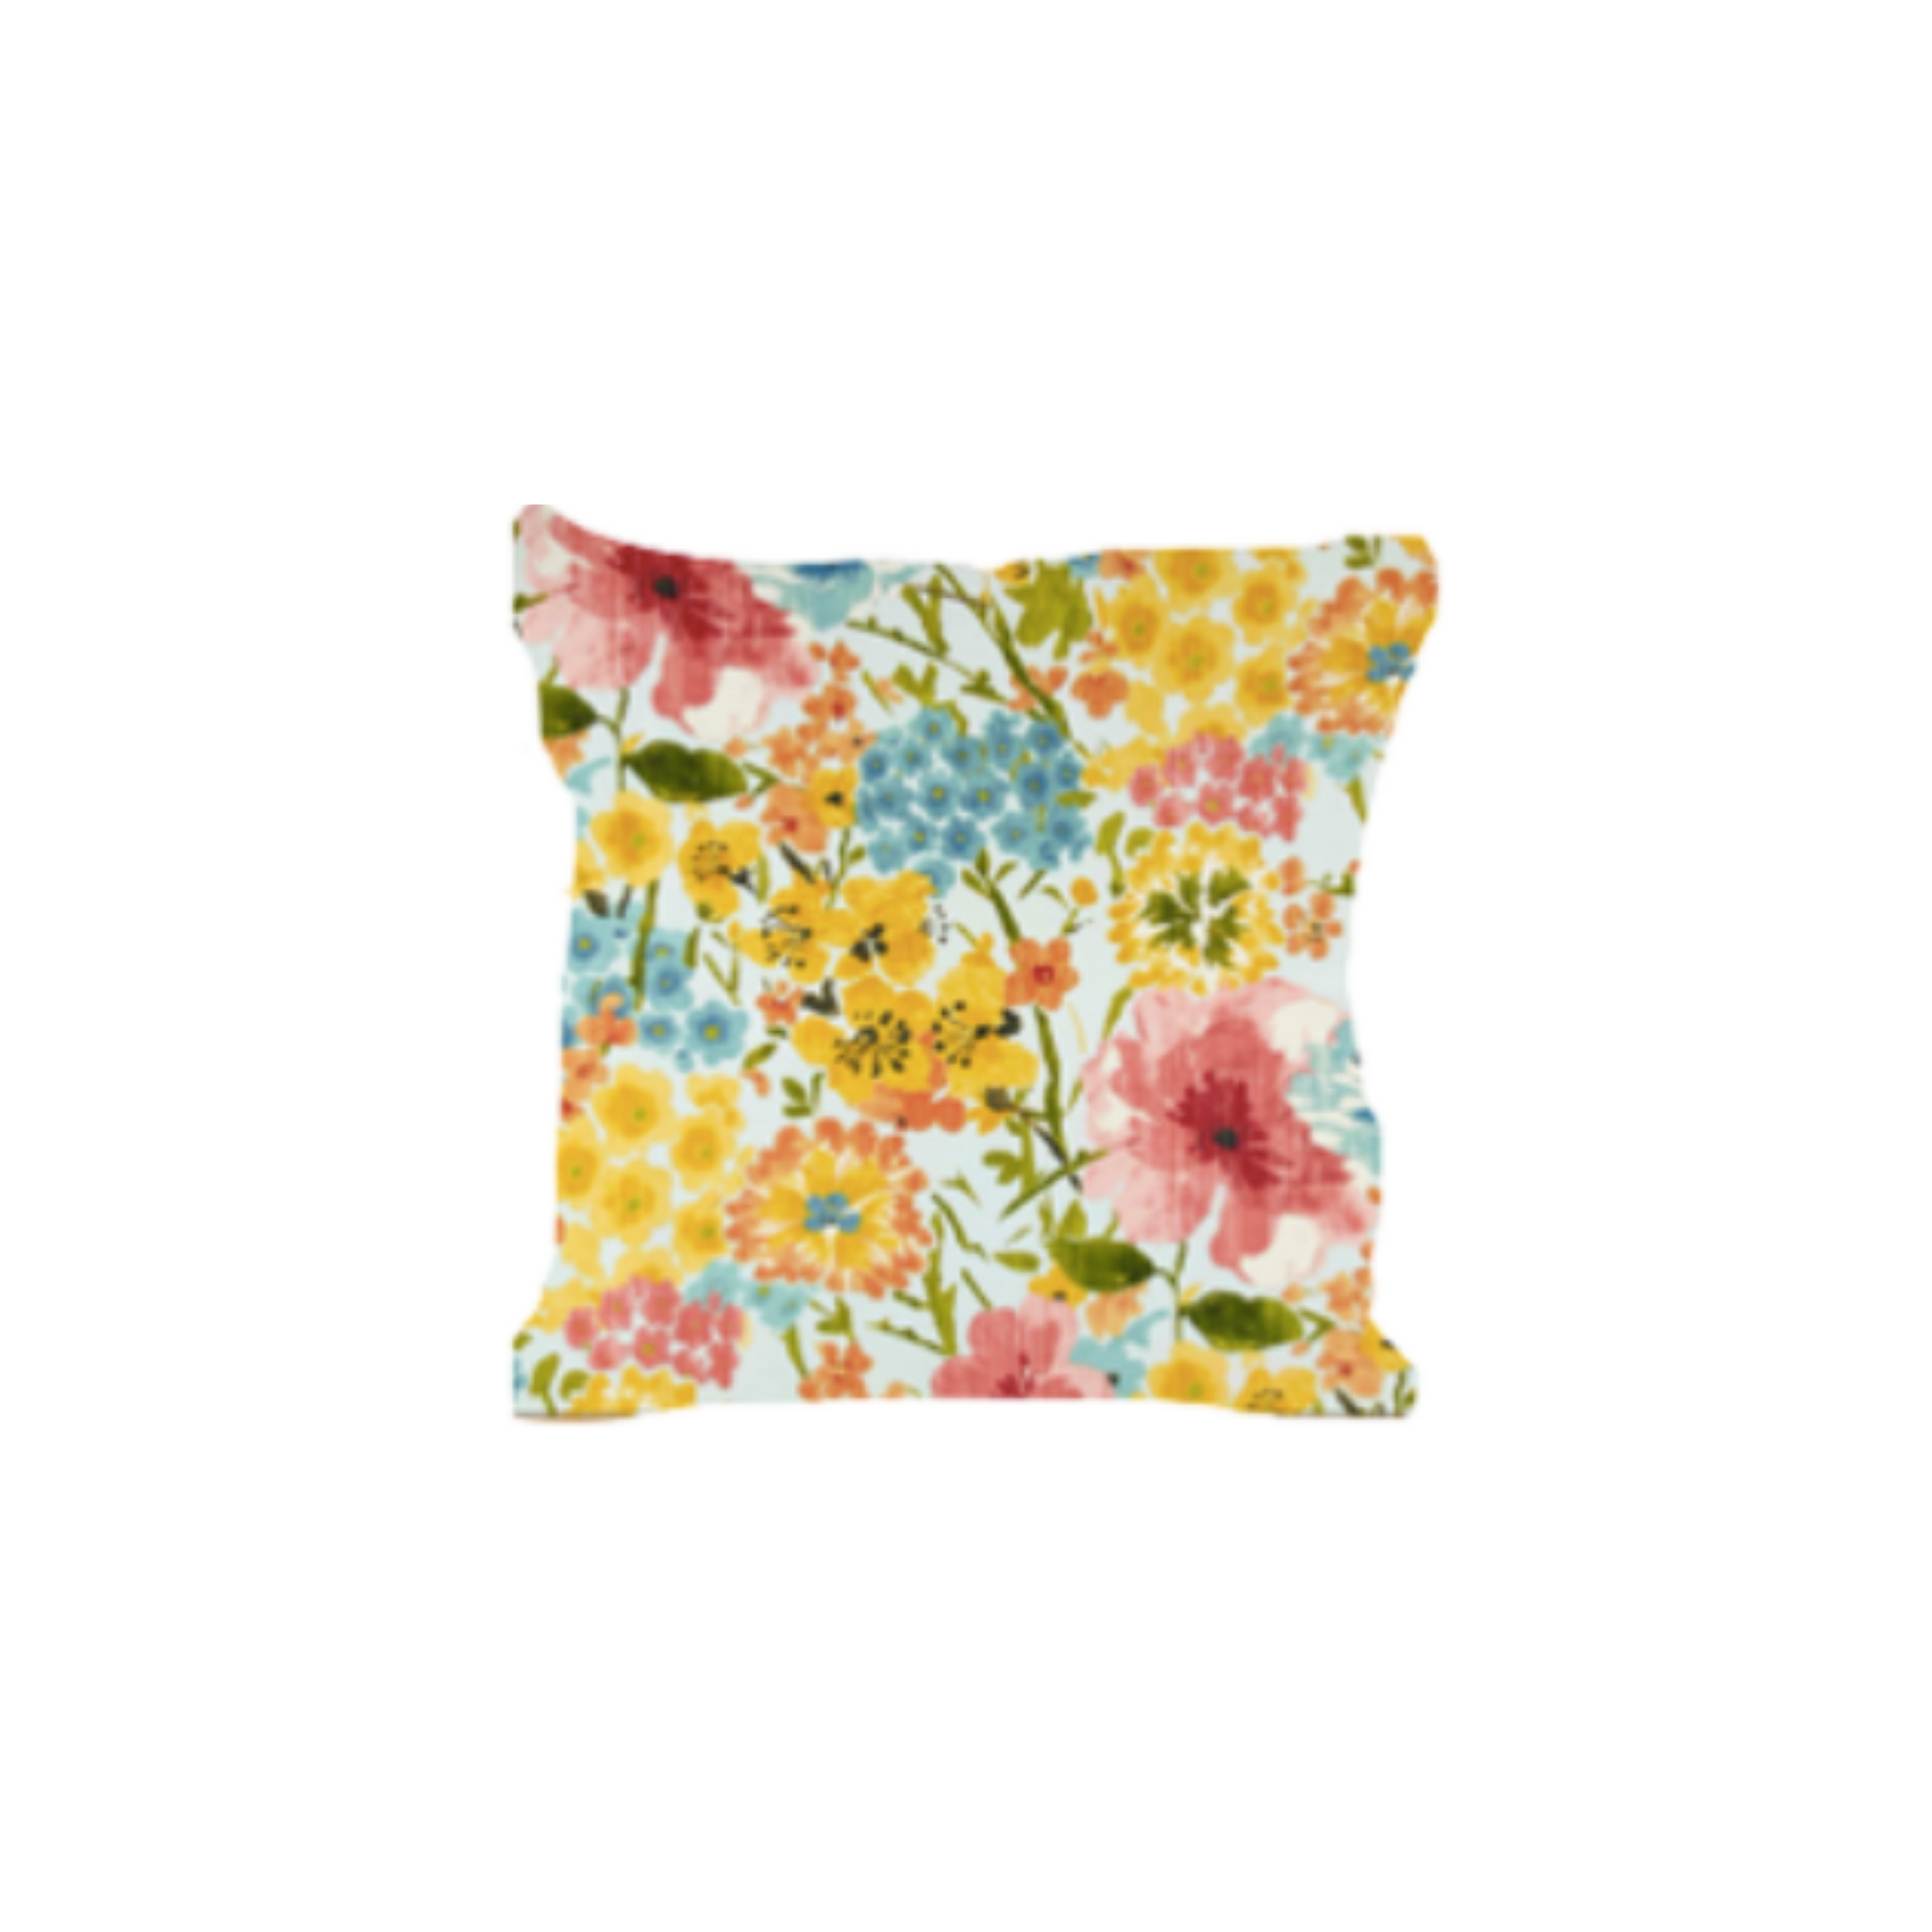 Outdoor Throw Pillow, Bali Dreams Bouquet